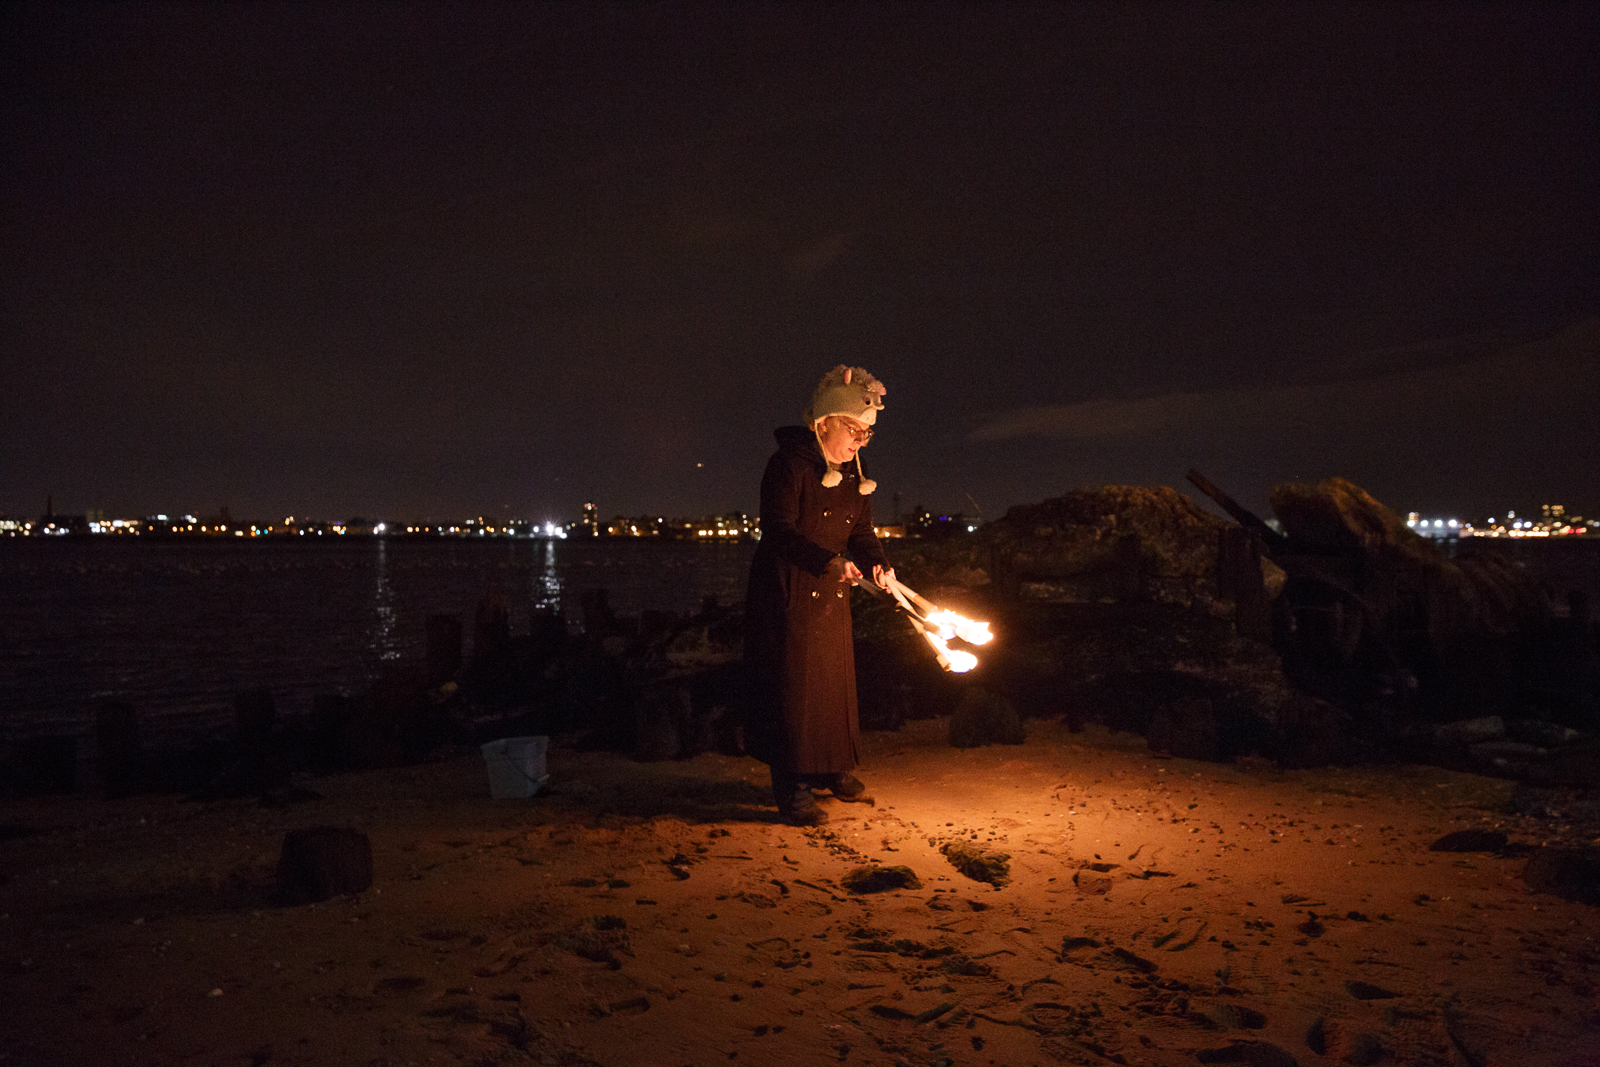 Kylie holds flaming torches, attempting to juggle them on the East River. Juggling flaming torches has been a dream for her since she was in middle school.